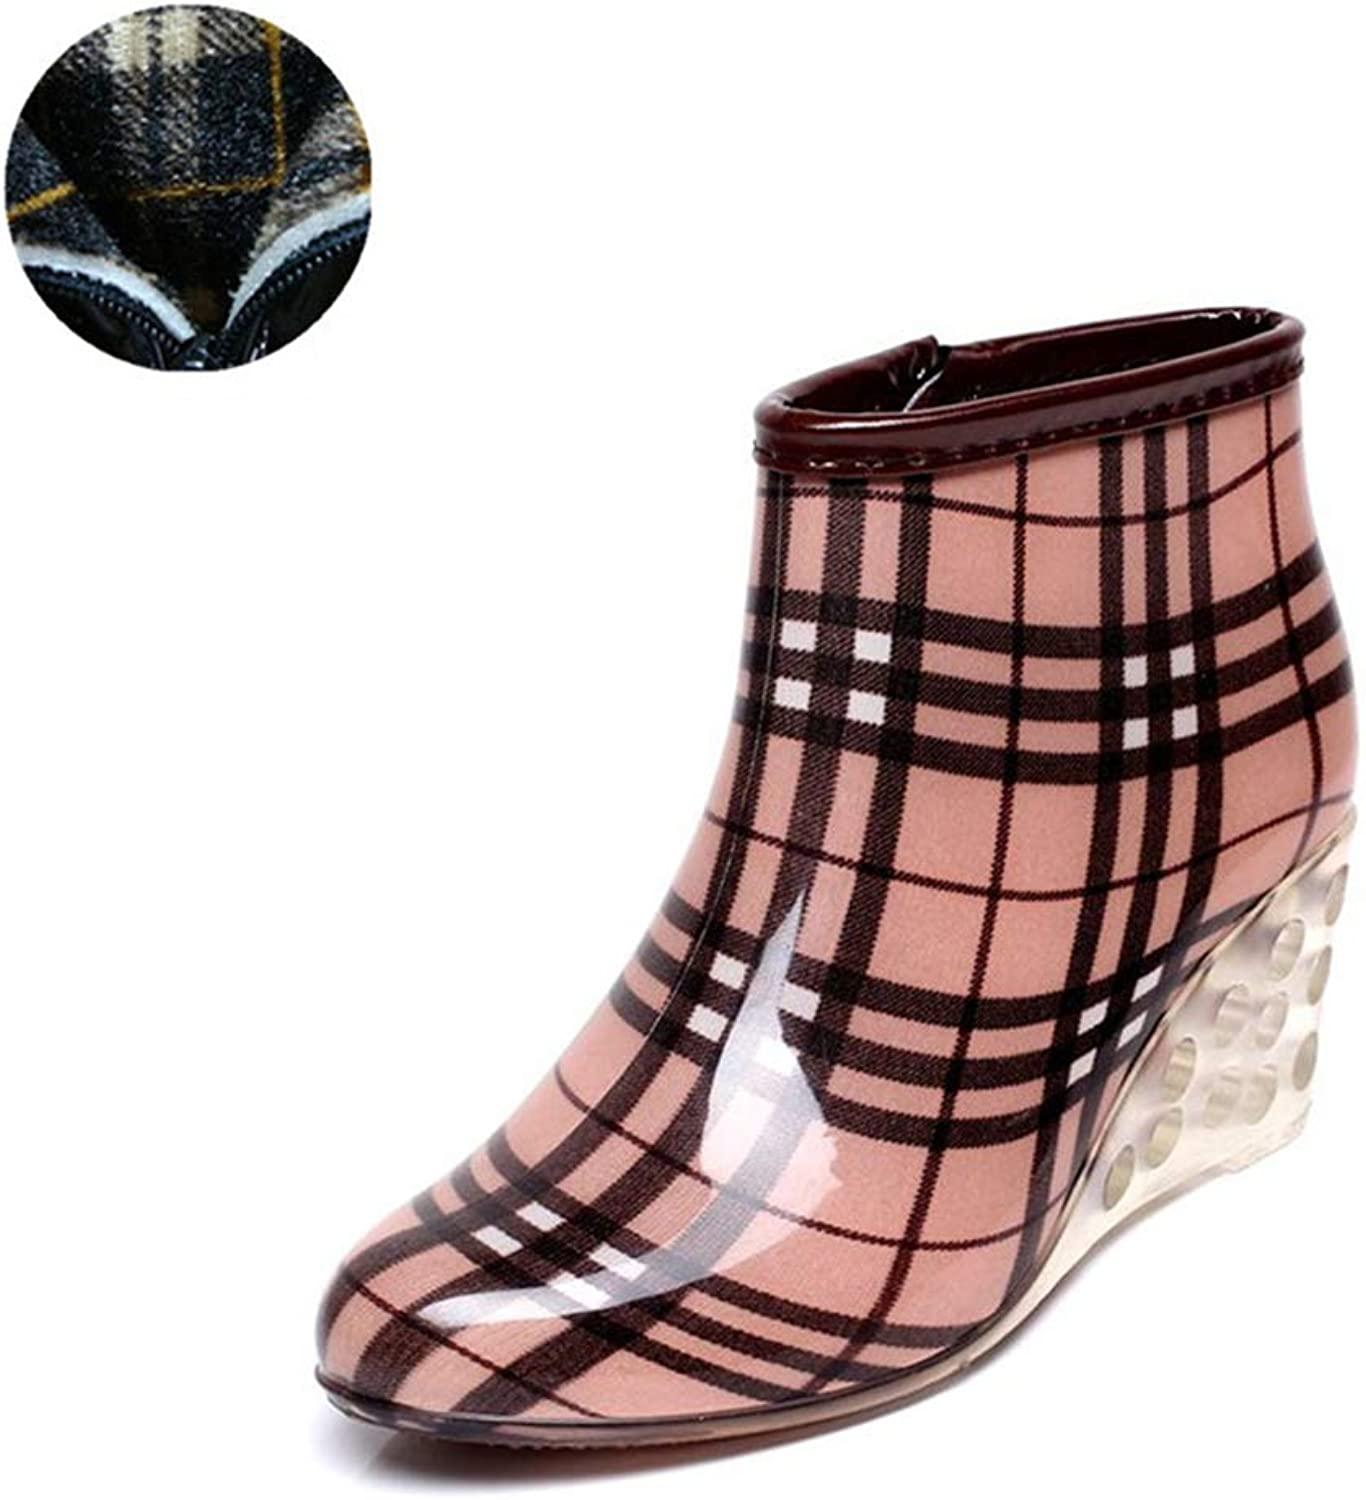 Fancyww Women's & Ladie's Ankle Rain Boots, Short Wedge Heels Garden Booties